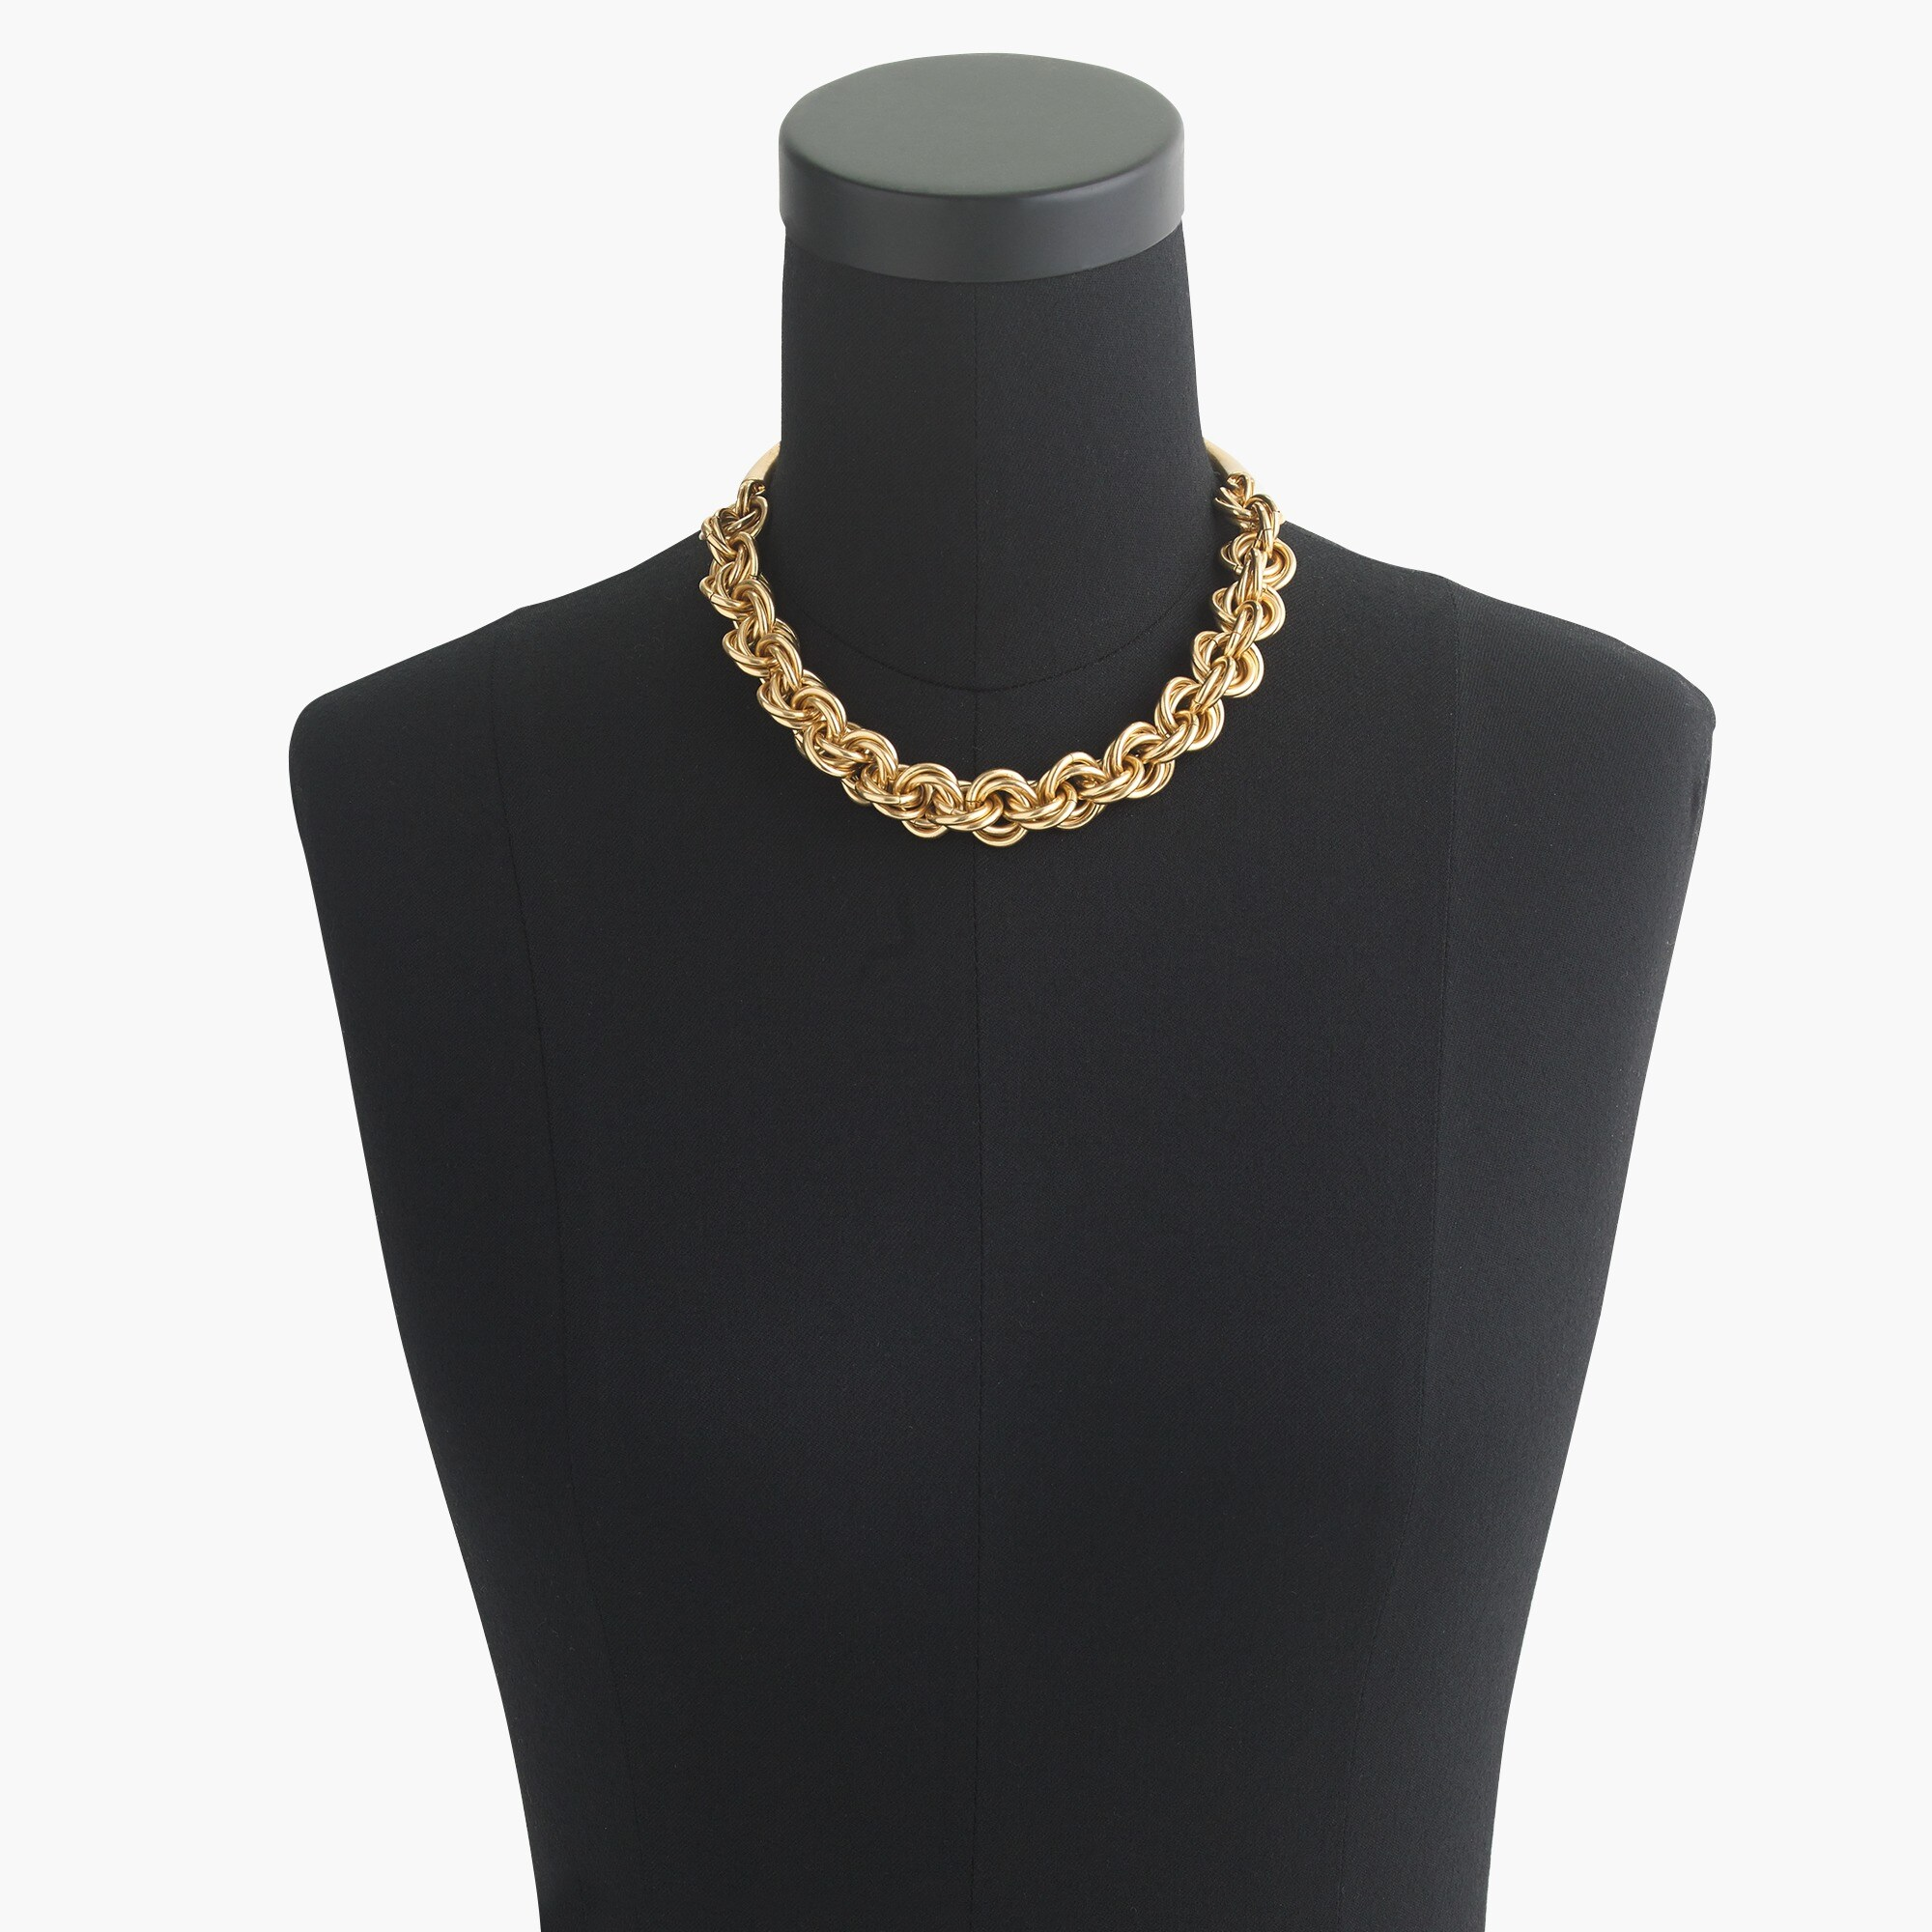 women's chain collar necklace - women's jewelry